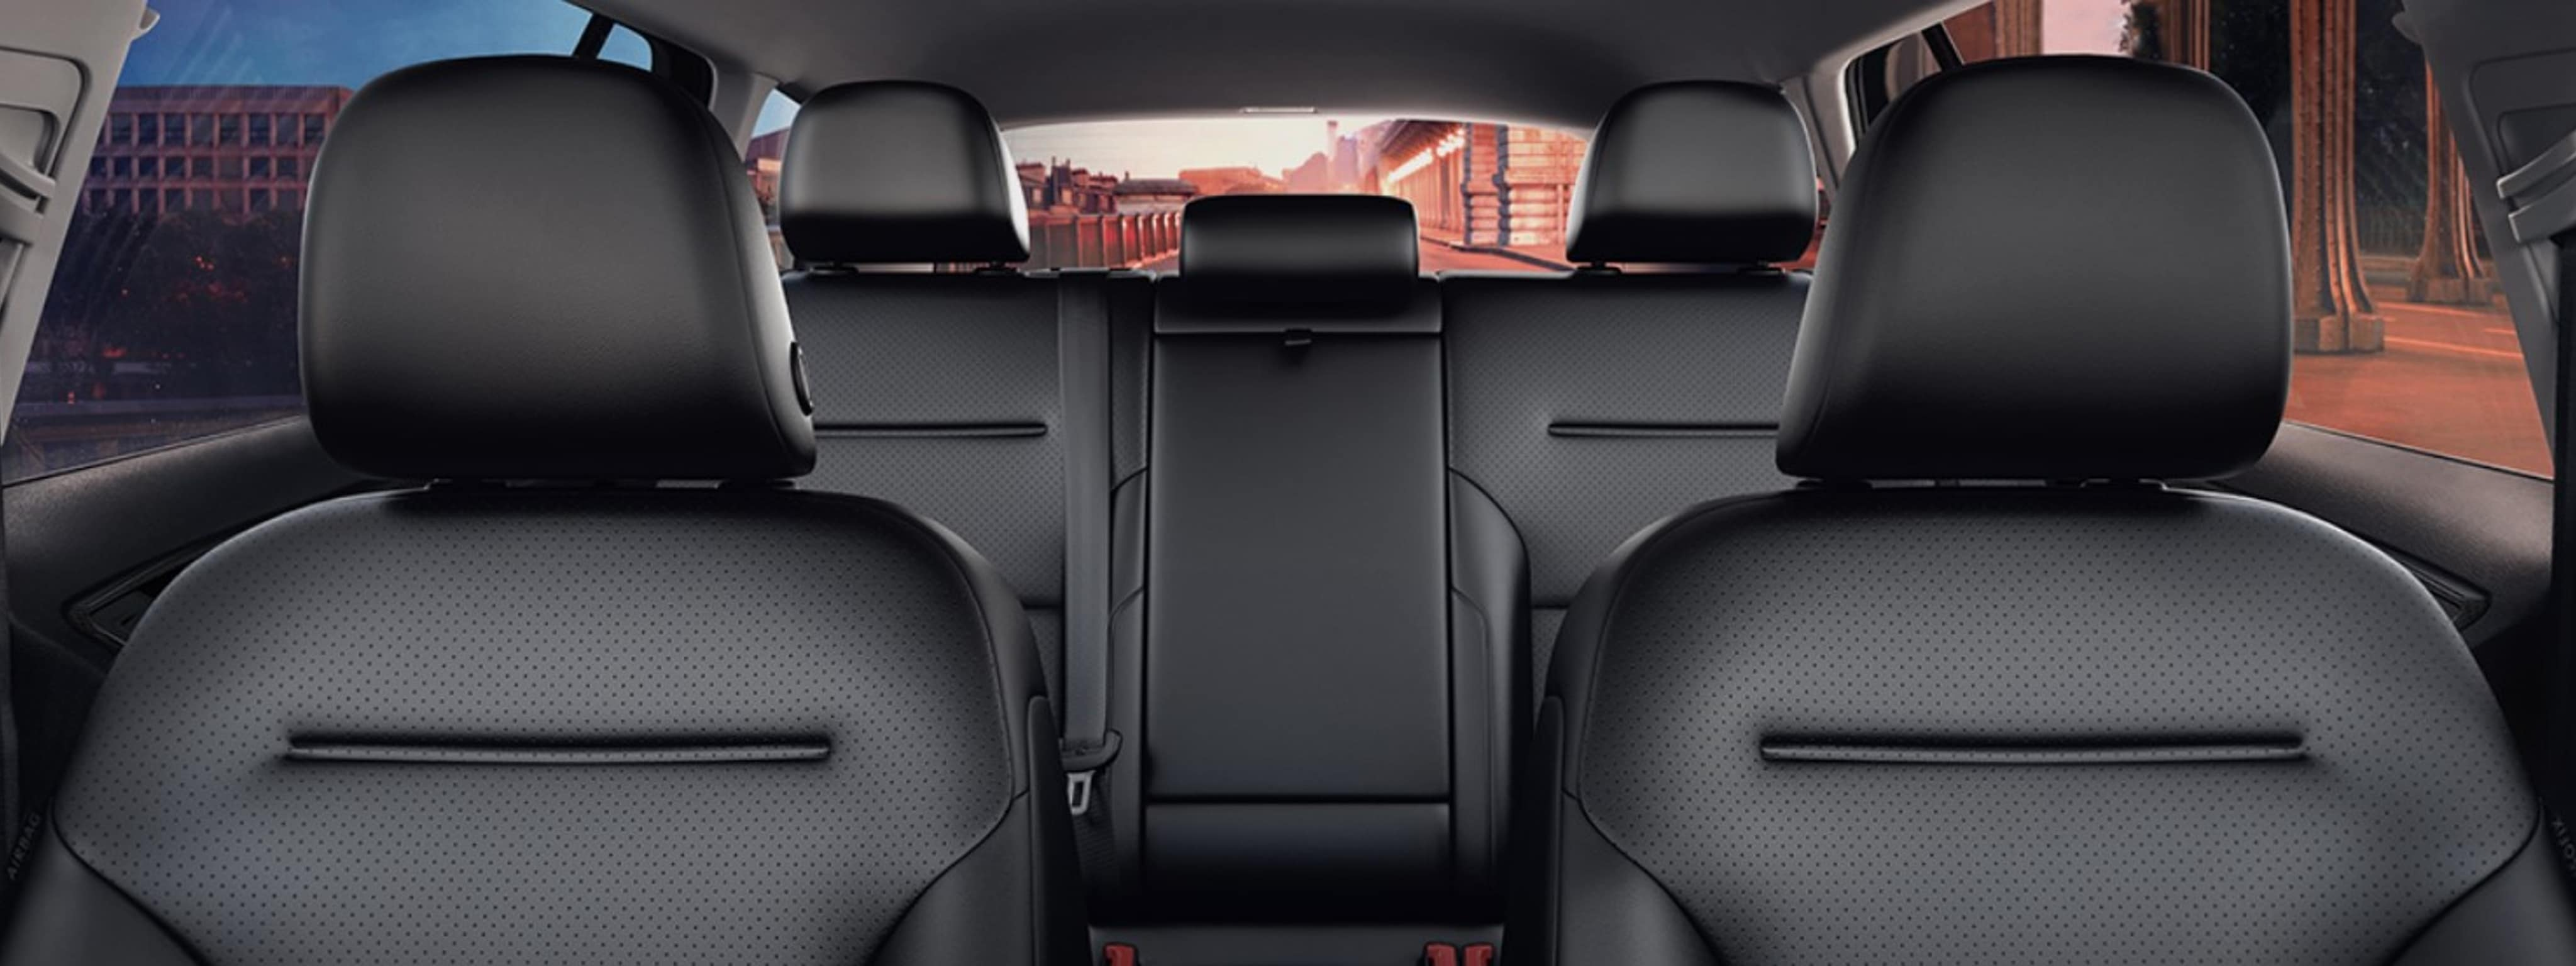 the black interior seating of a 2019 VW Alltrack